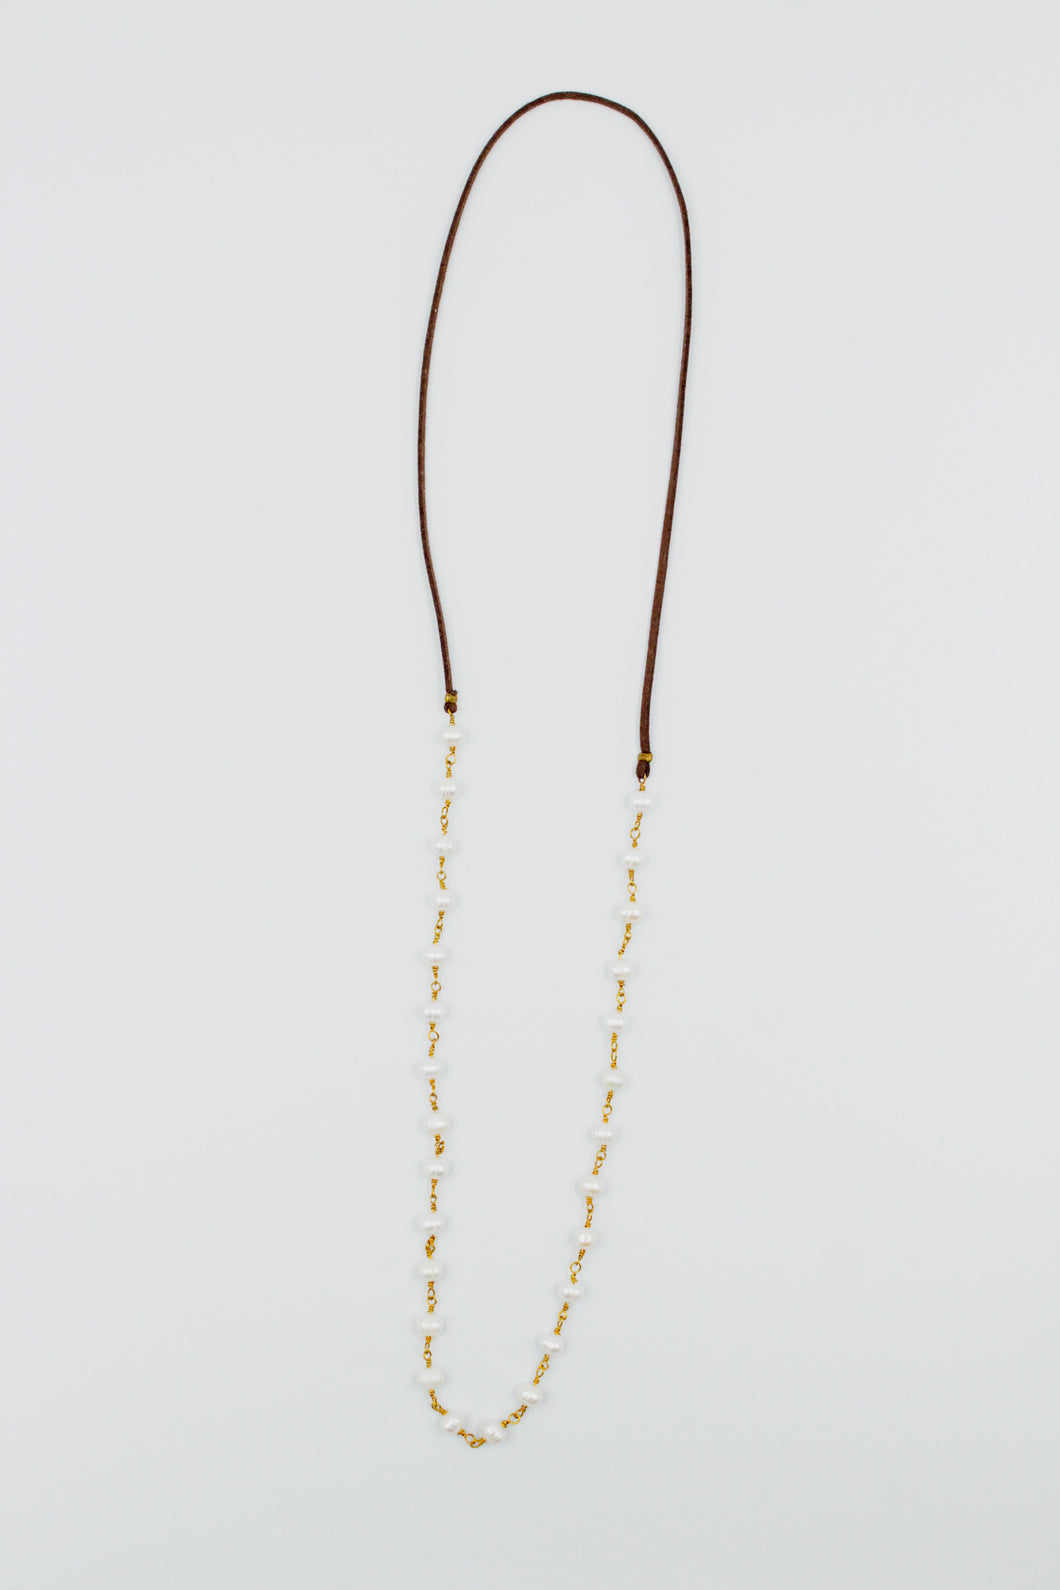 Cherrah Boho Layering Necklace - Pearl